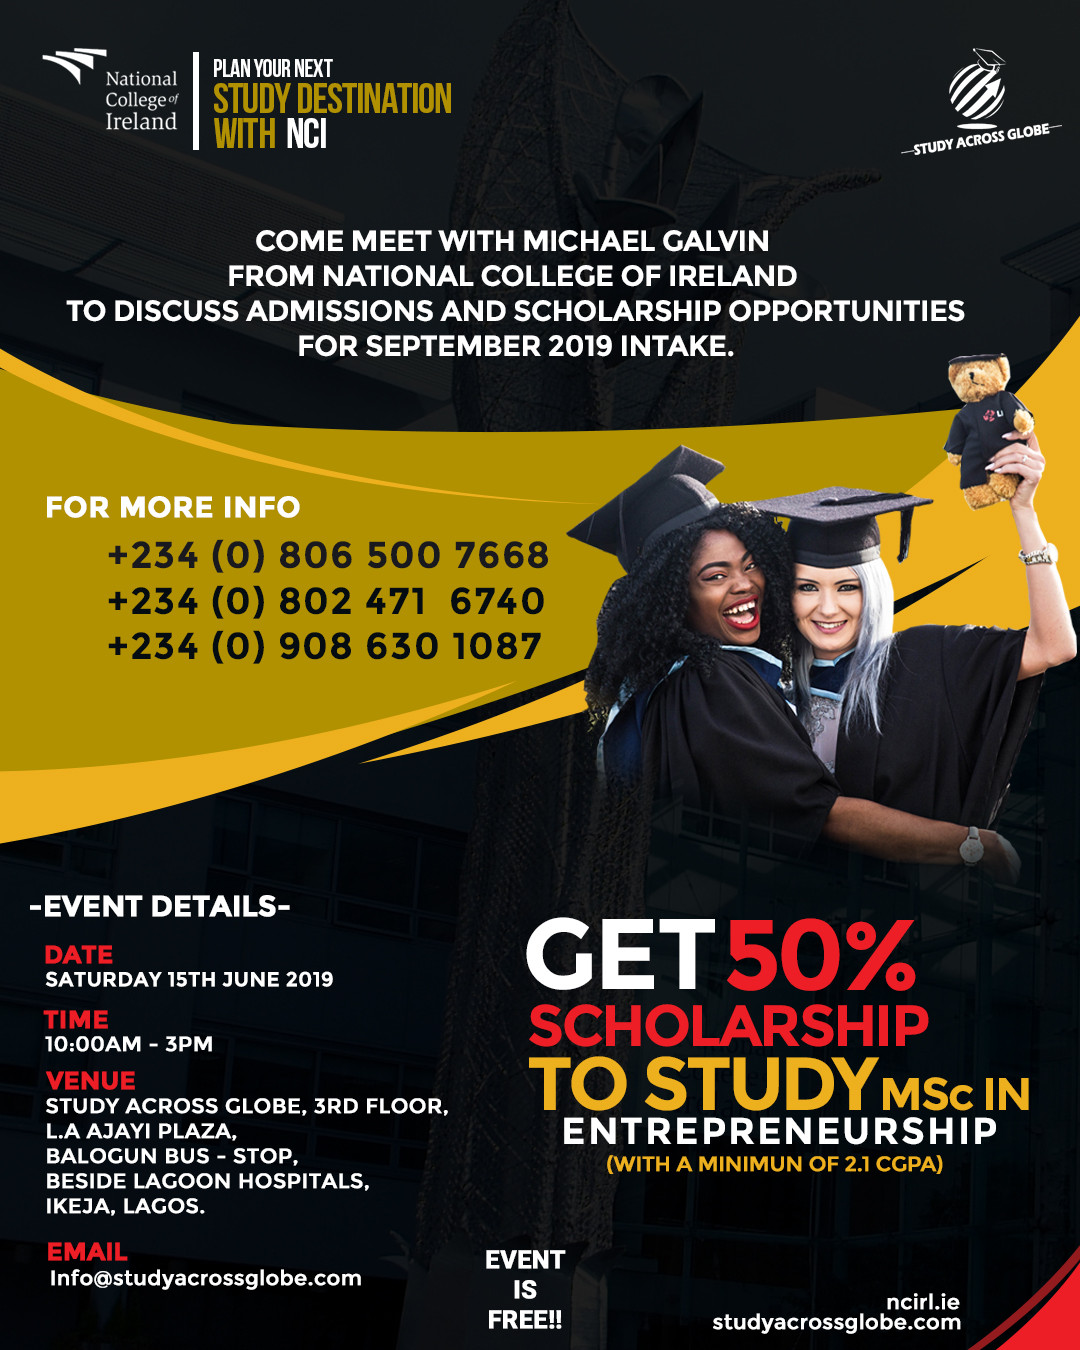 Meet with Michael Galvin from National College Of Ireland to discuss admissions, scholarships and post study visa opportunities for September 2019 intake!